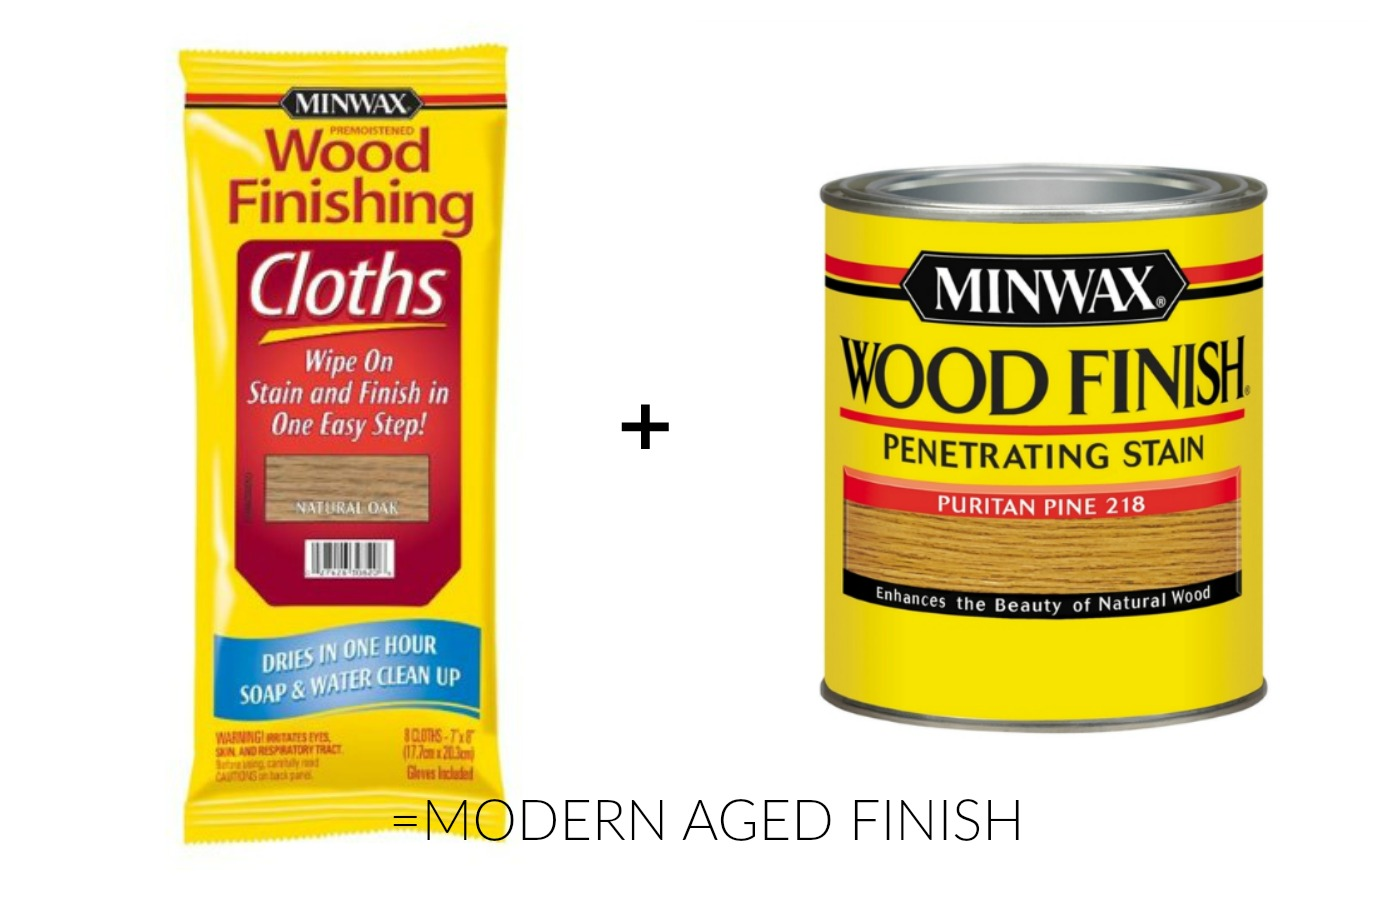 Modern-Finish-With-Minwax